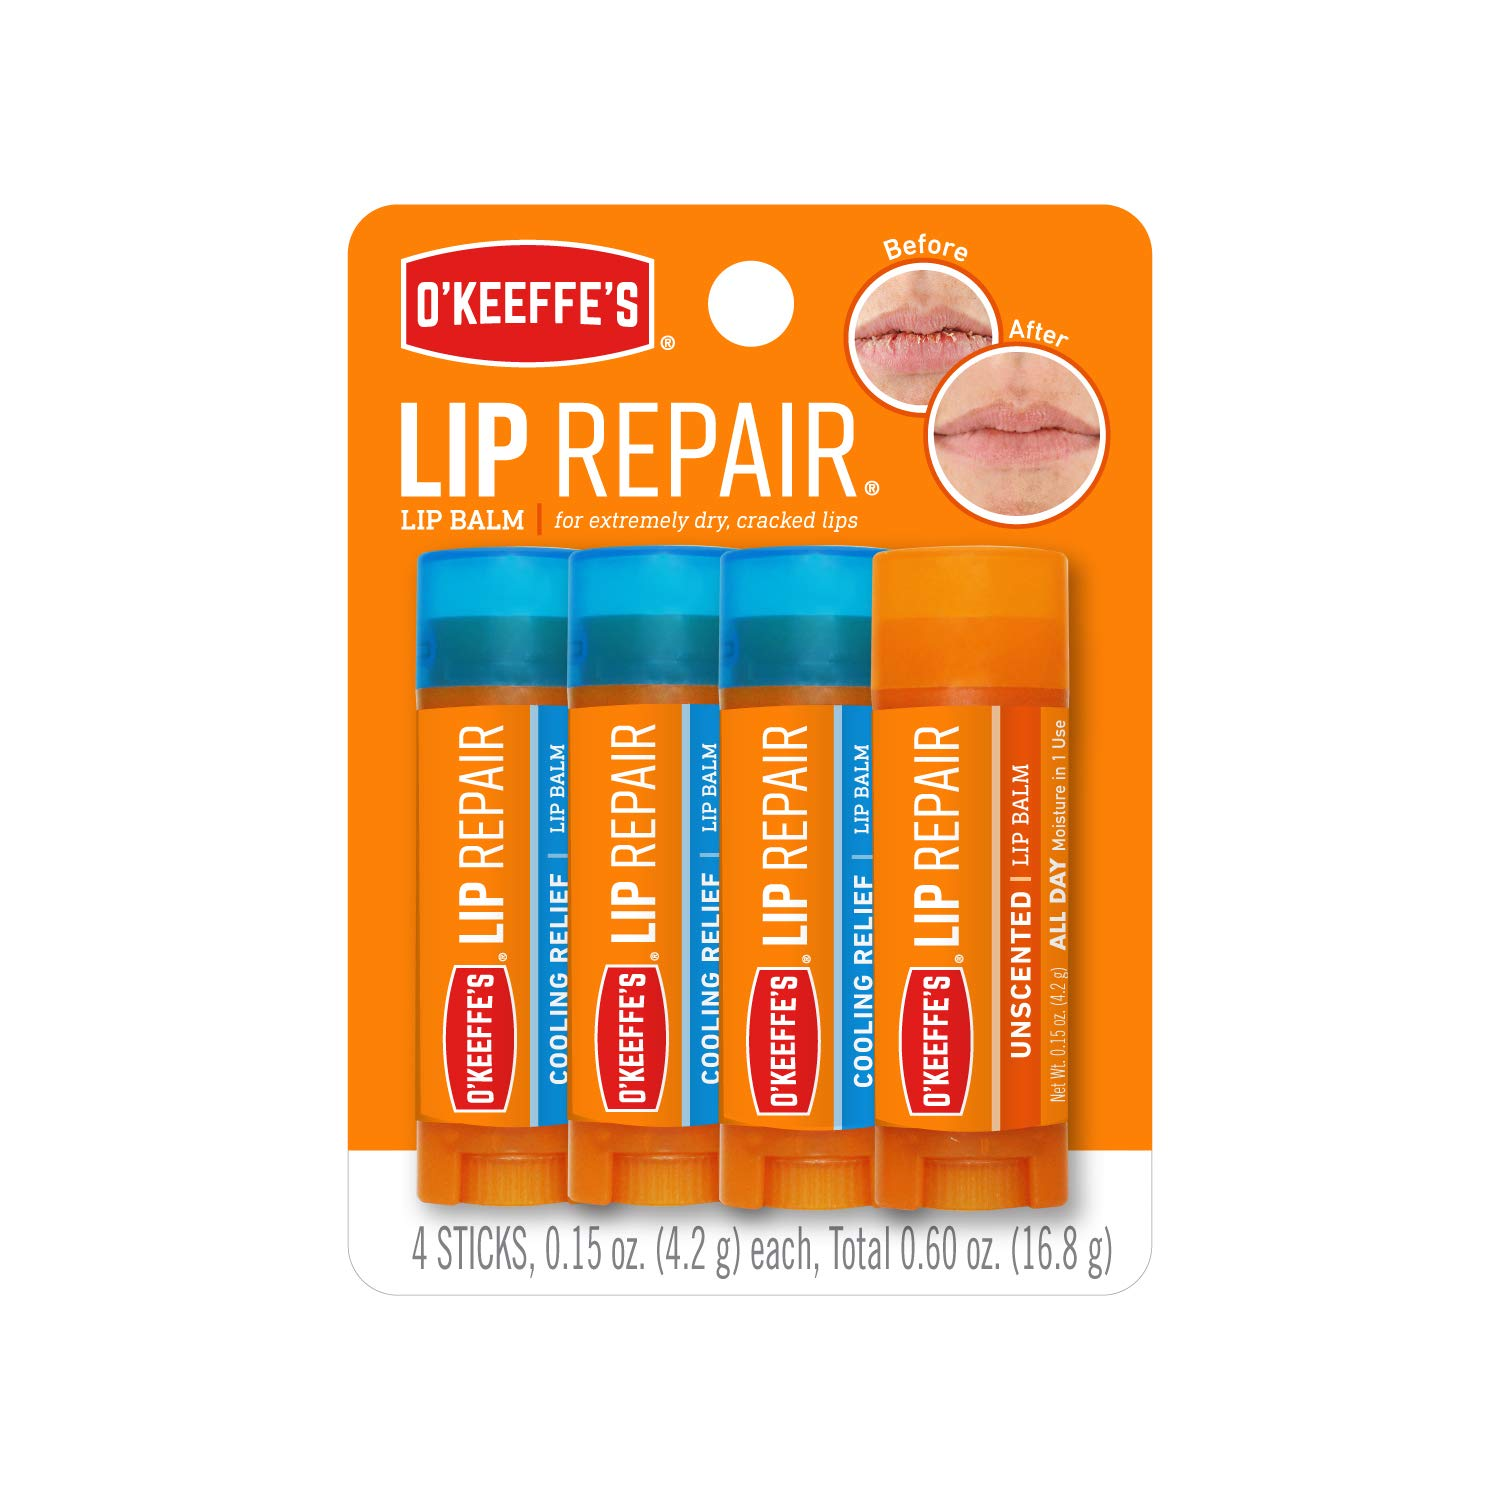 O'Keeffe's Lip Repair Lip Balm for Dry, Cracked Lips, Stick (Pack of 4: 3 Cooling + 1 Unscented)